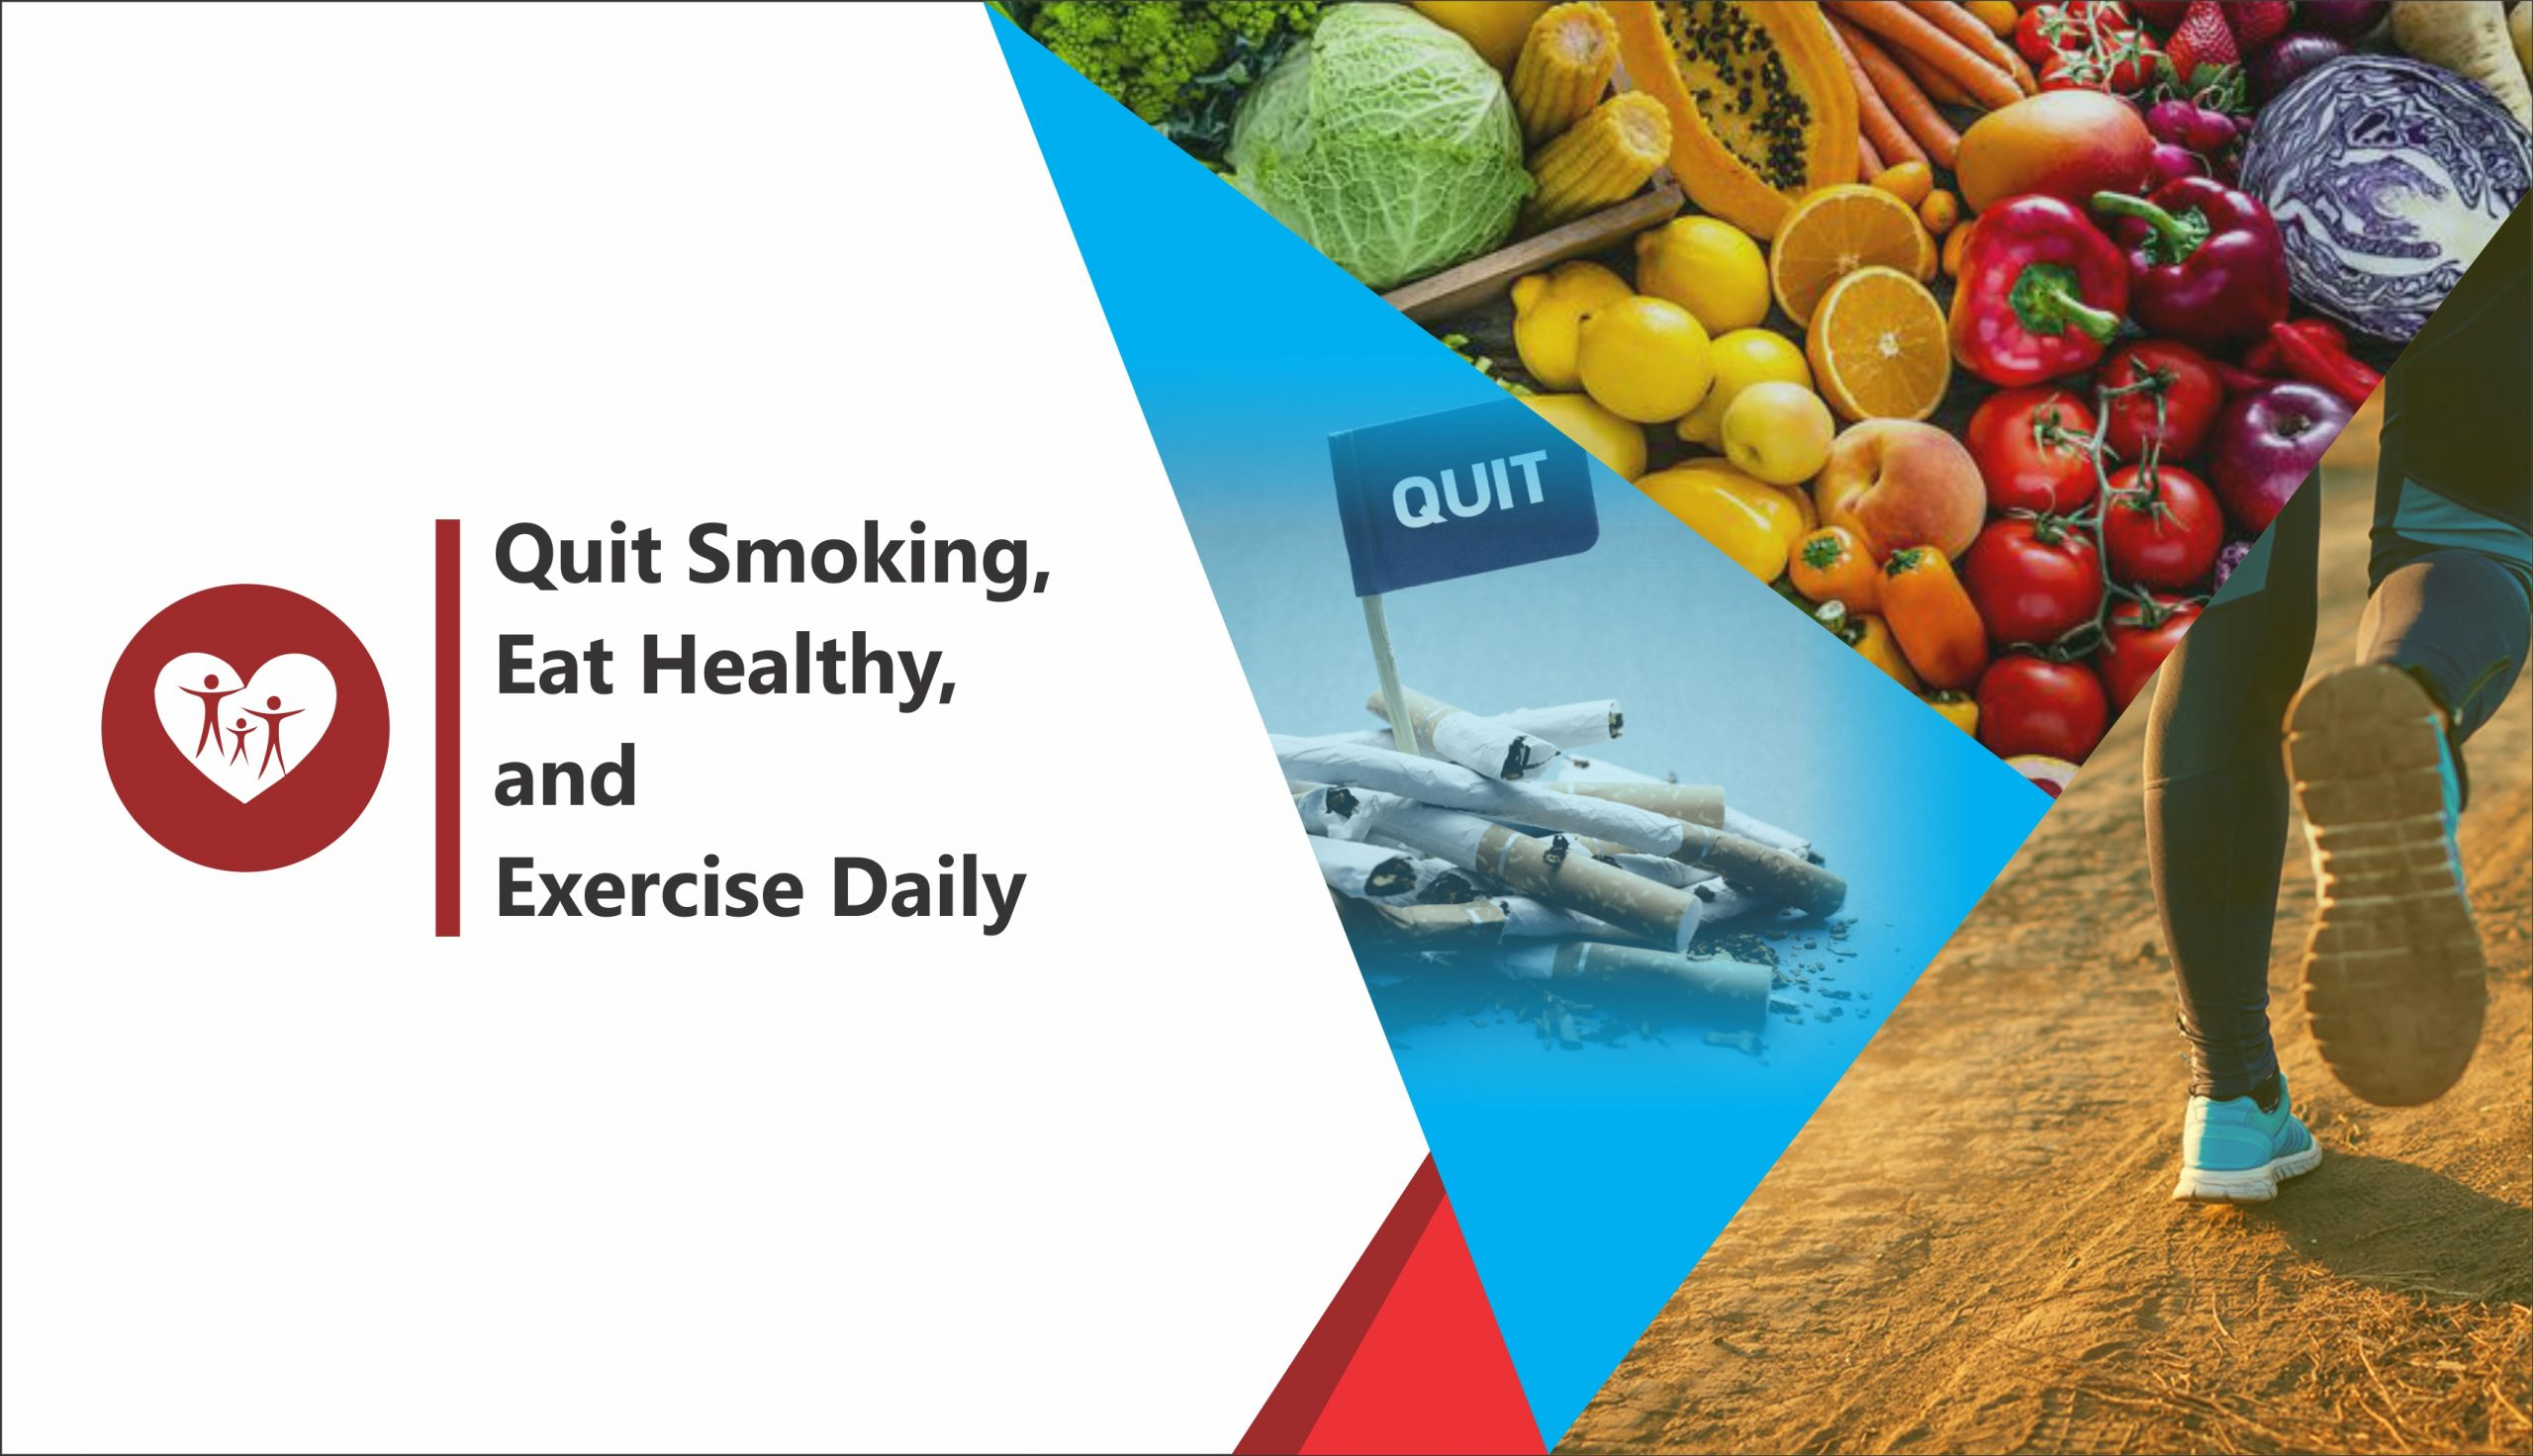 Quit Smoking, Eat Healthy, and Exercise Daily